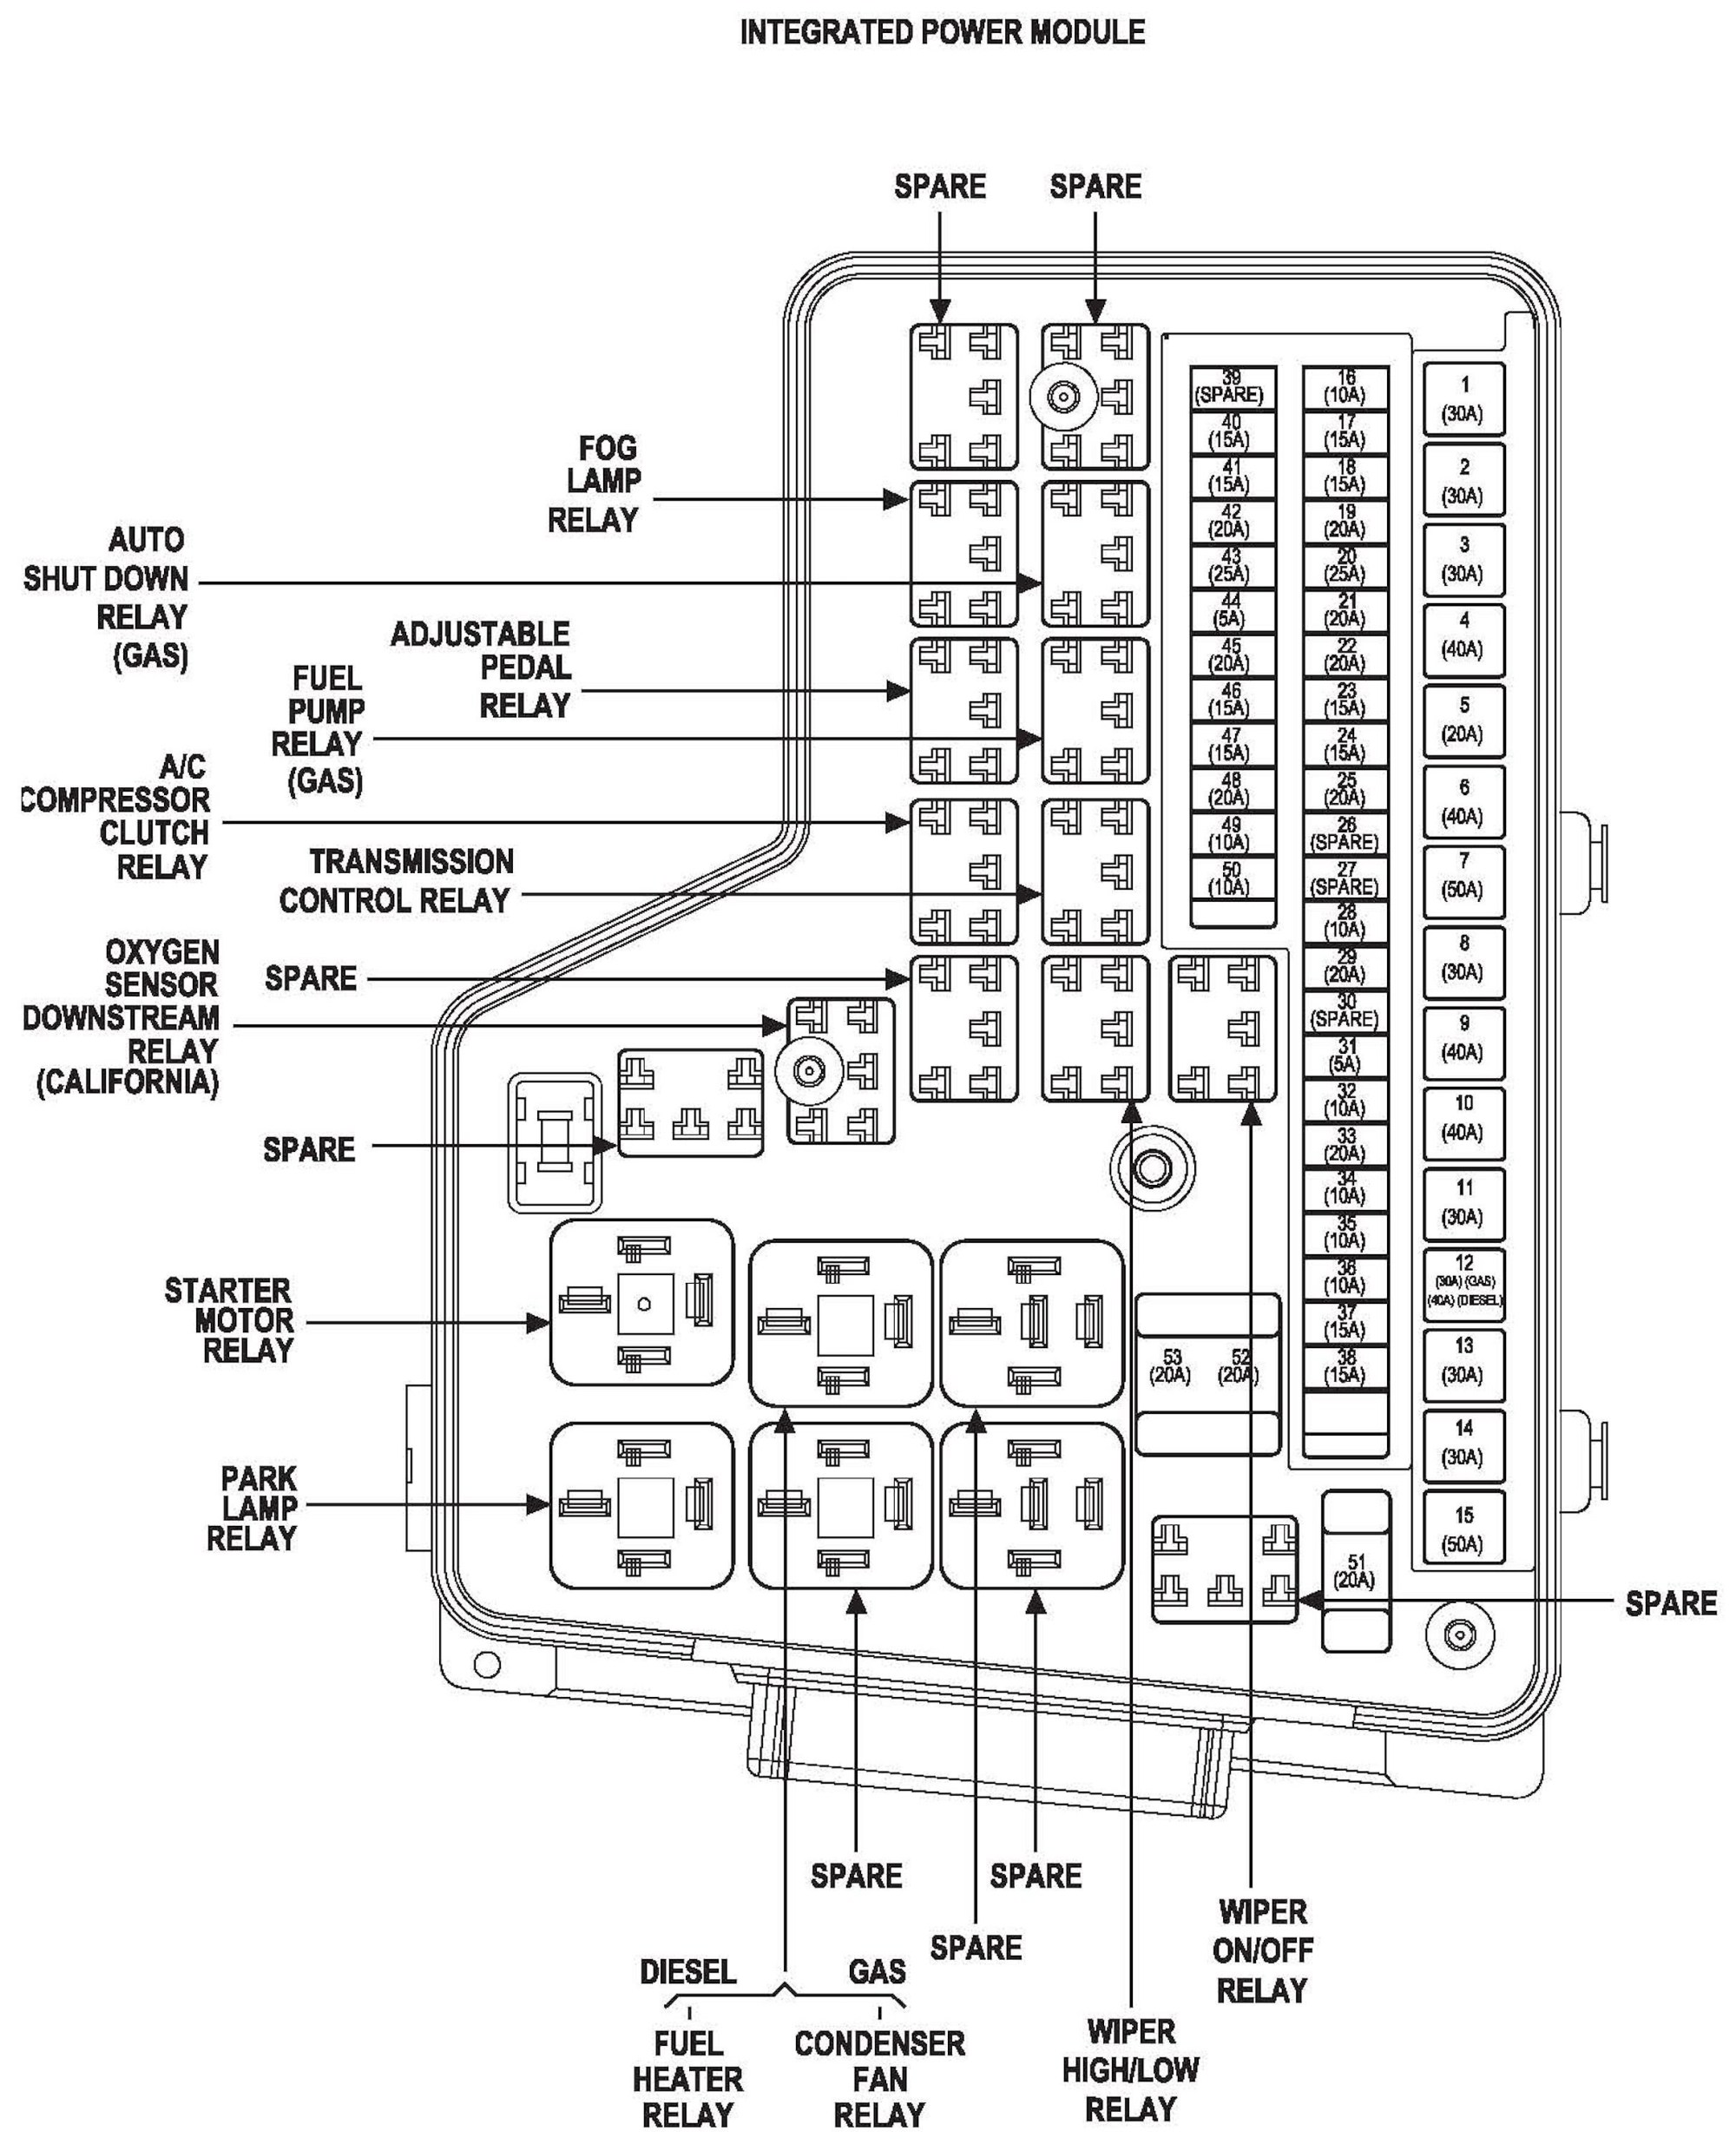 hight resolution of 94 dodge ram fuse diagram wiring diagram mega 1994 dodge ram 2500 wiring diagram 94 dodge